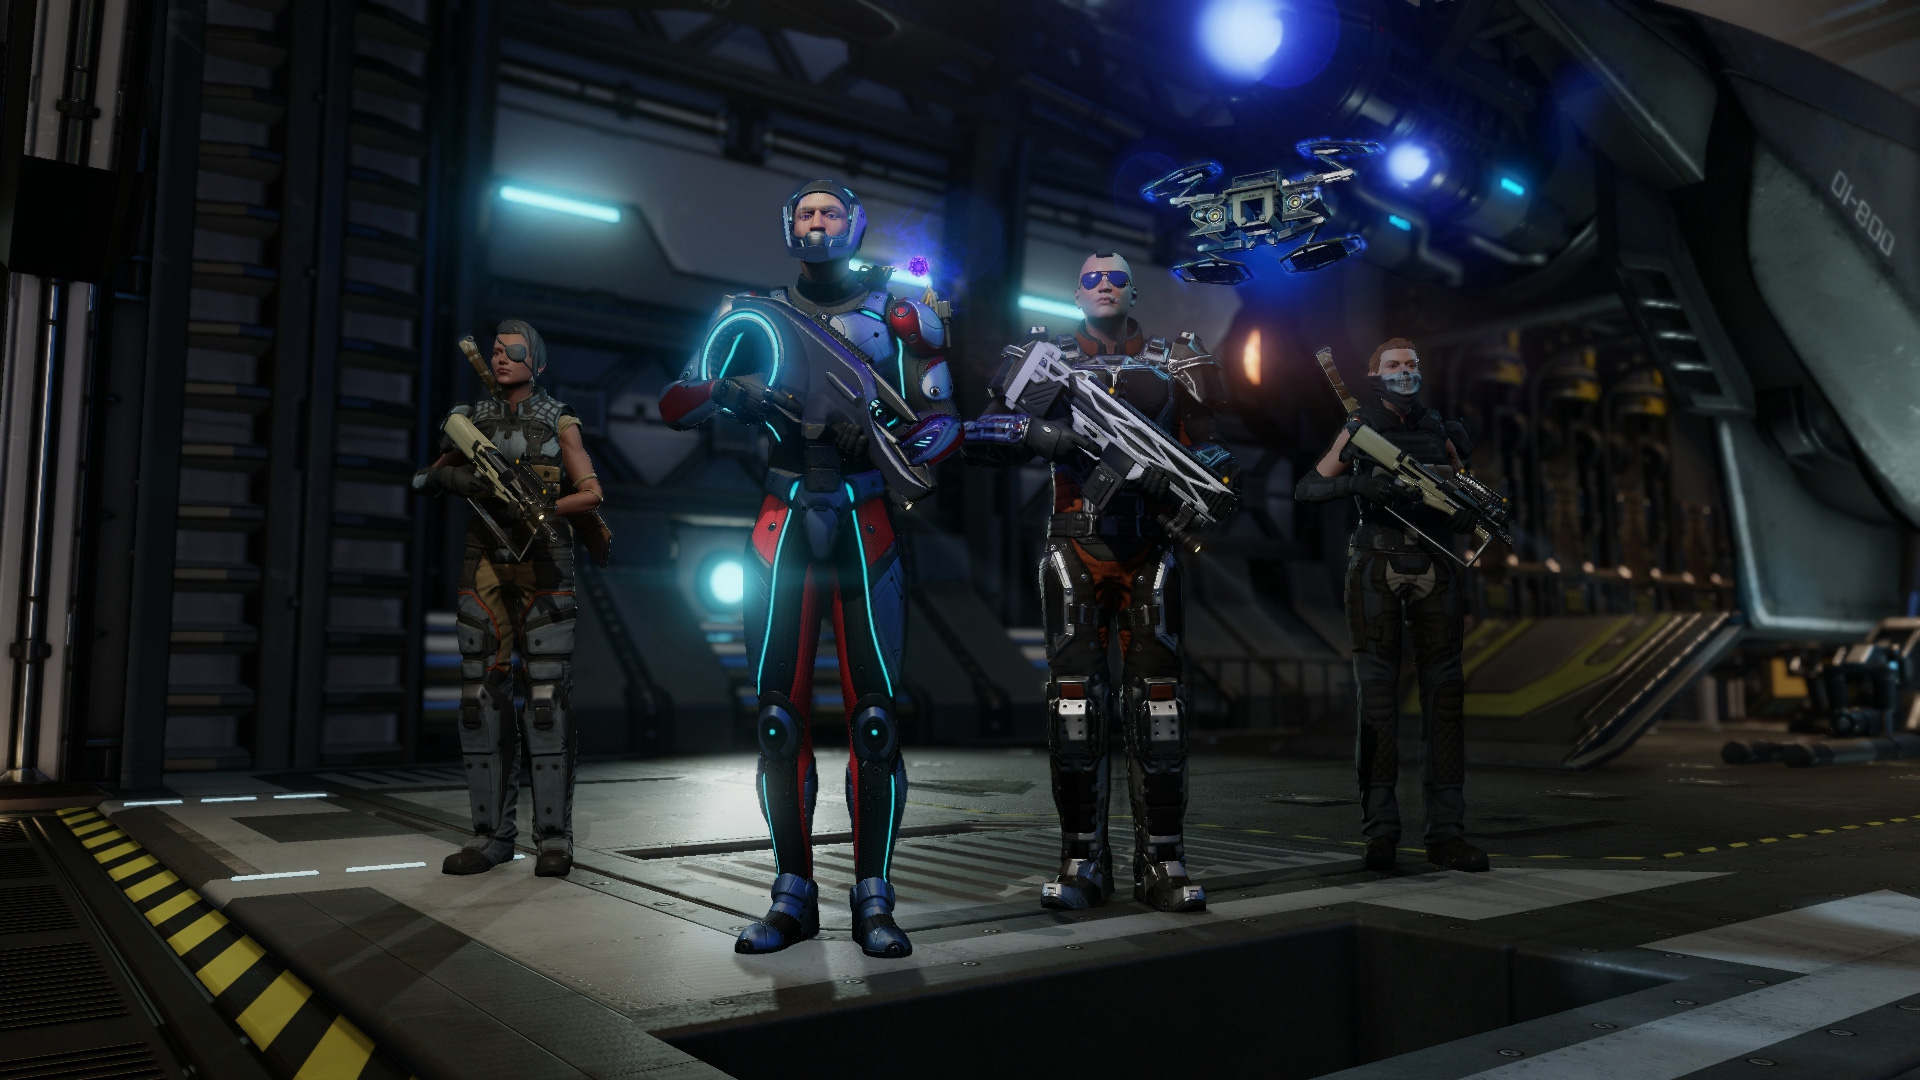 xcom wallpapers high quality download free